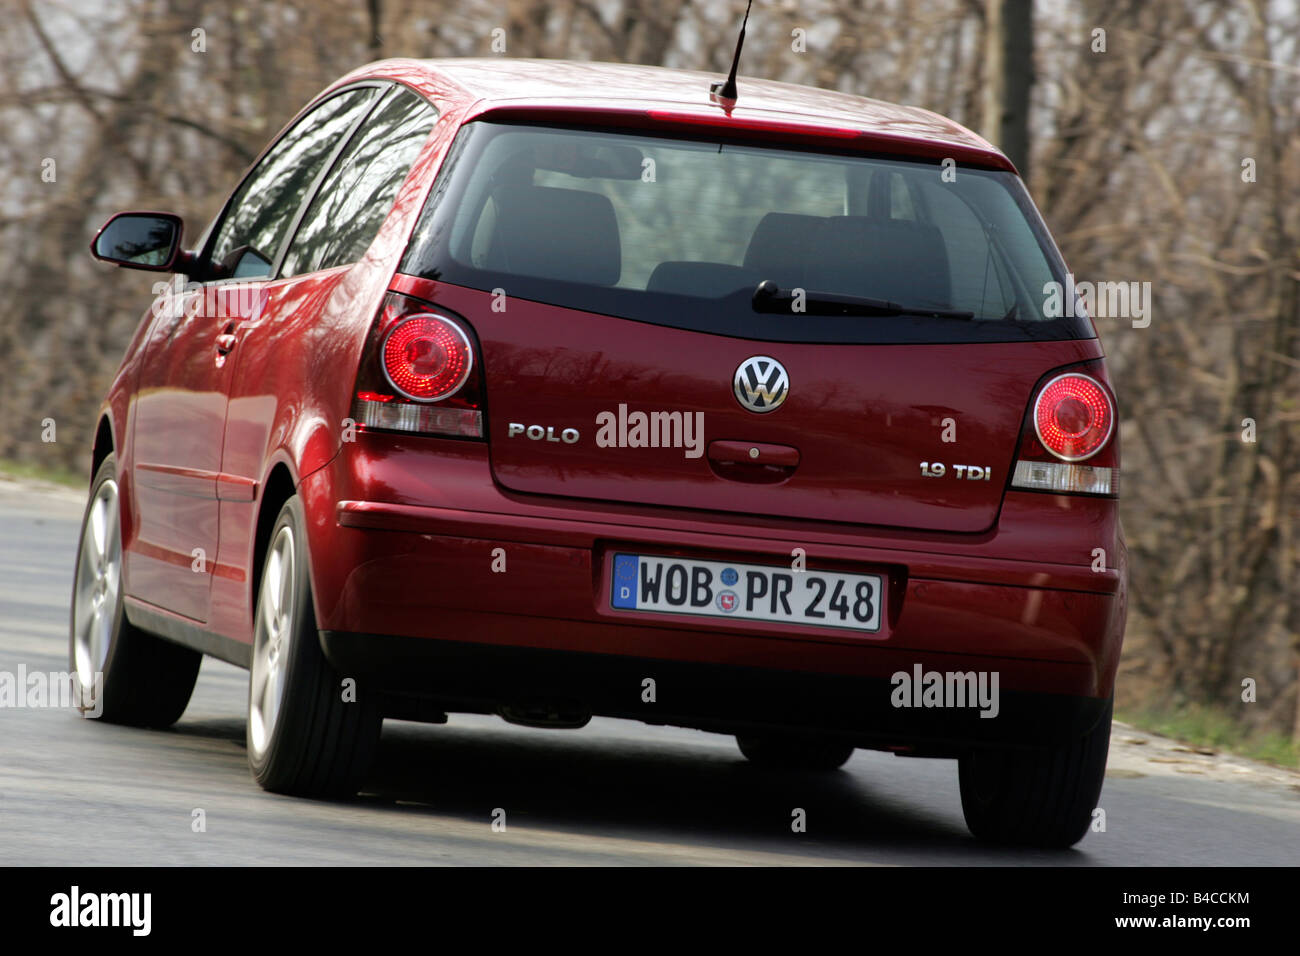 Car Vw Volkswagen Polo 1 4 Tdi Model Year 2005 Ruby